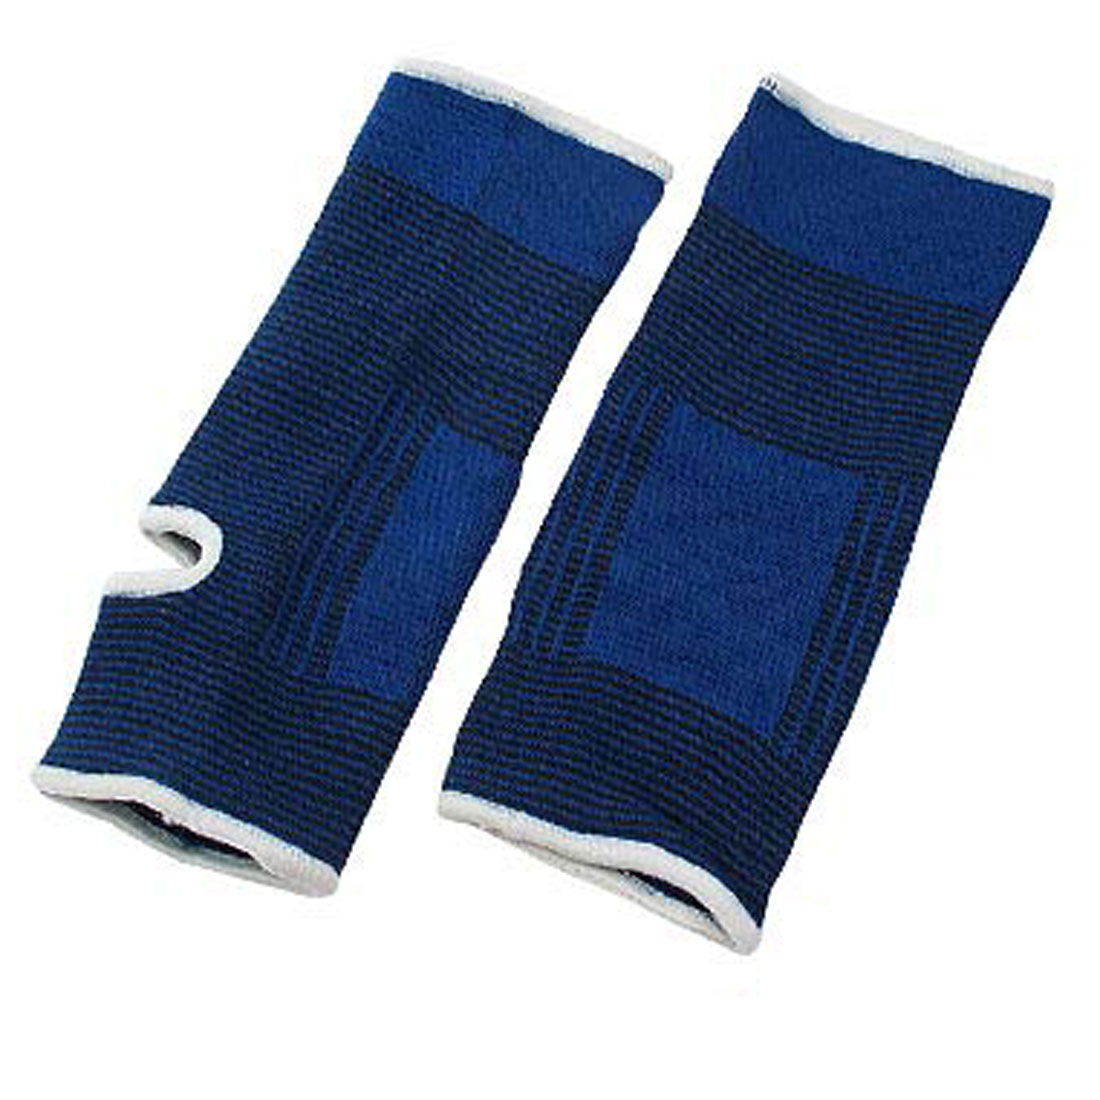 Sports Ankle Support Brace Pad Wrap Band